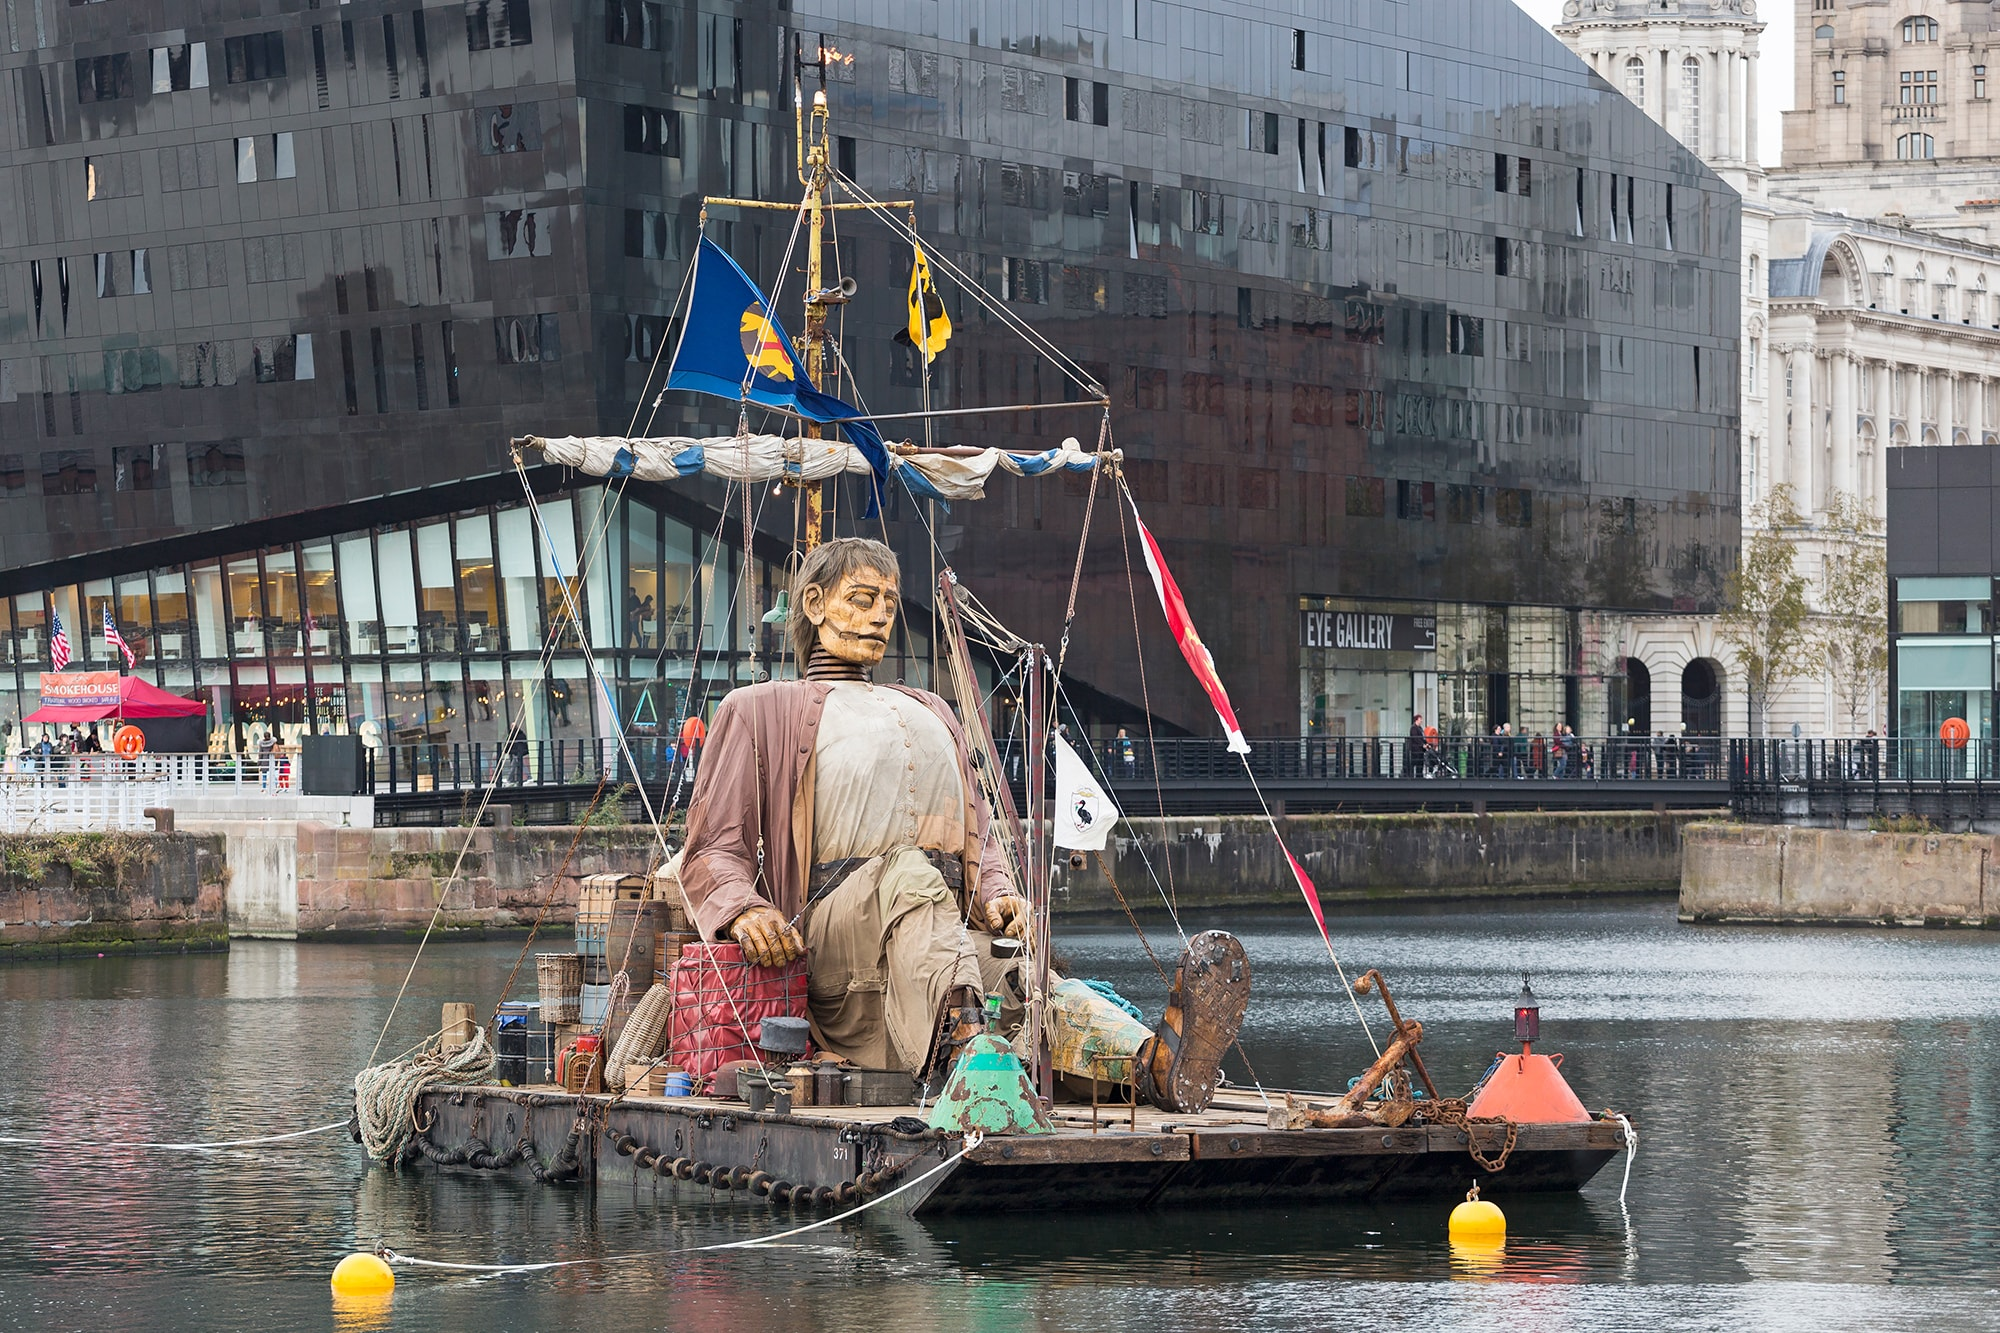 Big Giant sleeping on a raft in Canning Dock, Liverpool